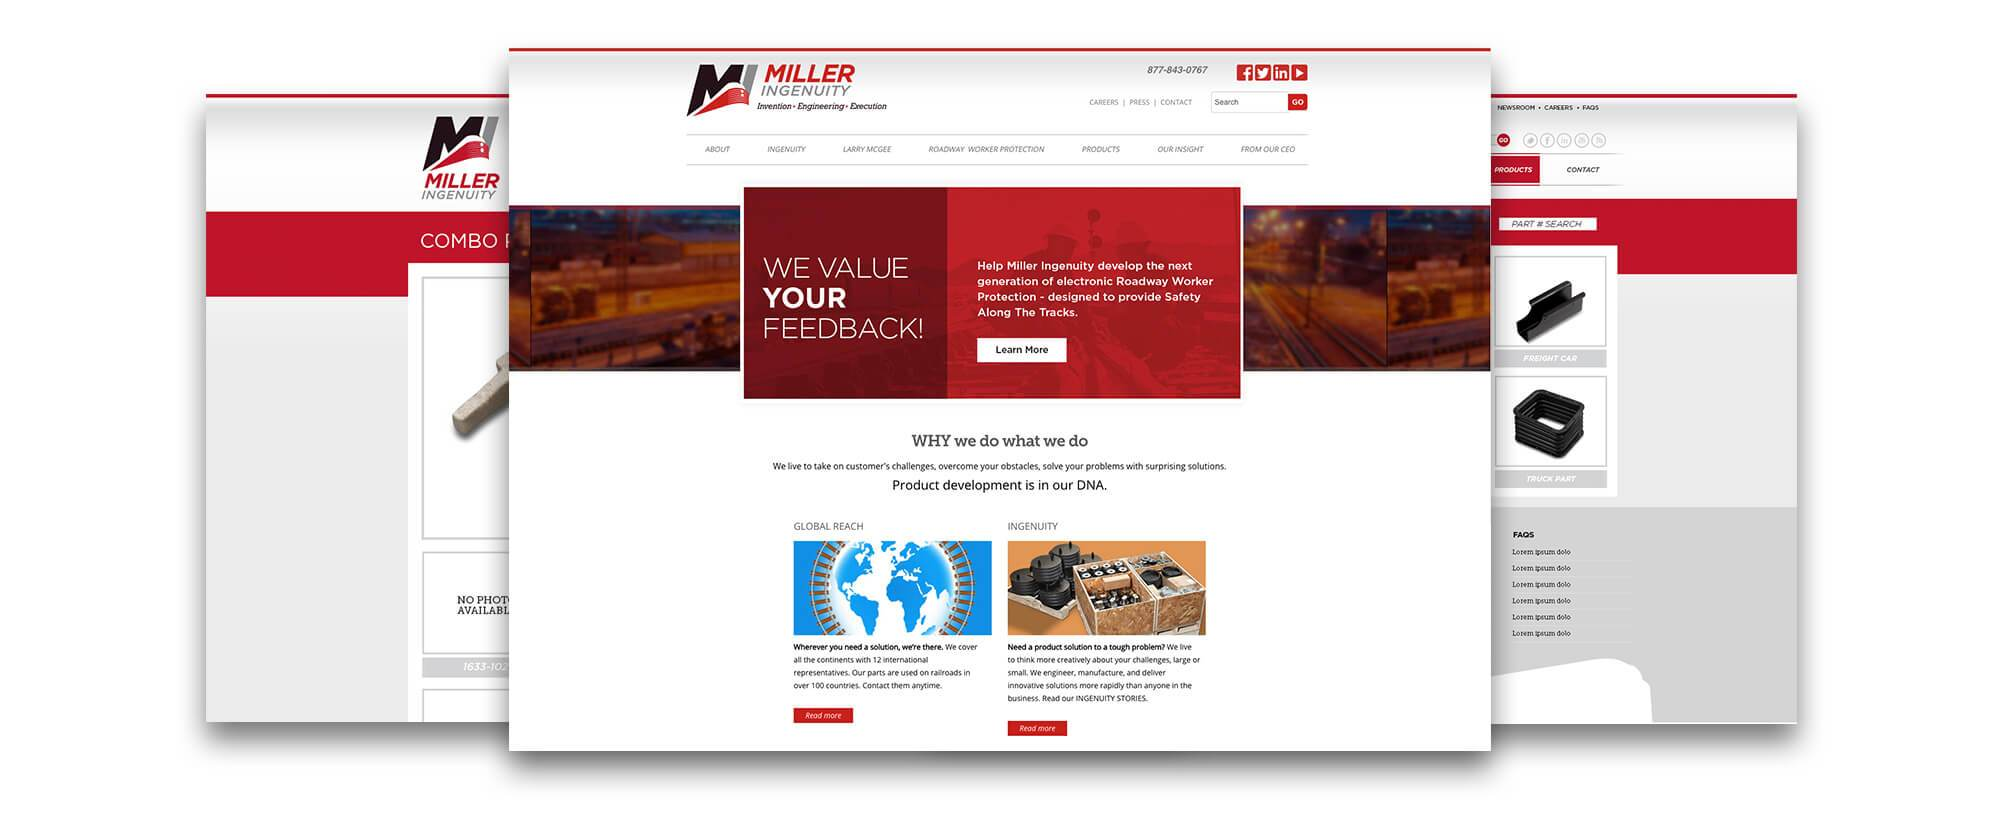 https://2010solutions.com/wp-content/themes/2010_2017/images/miller/SecondImage.jpg